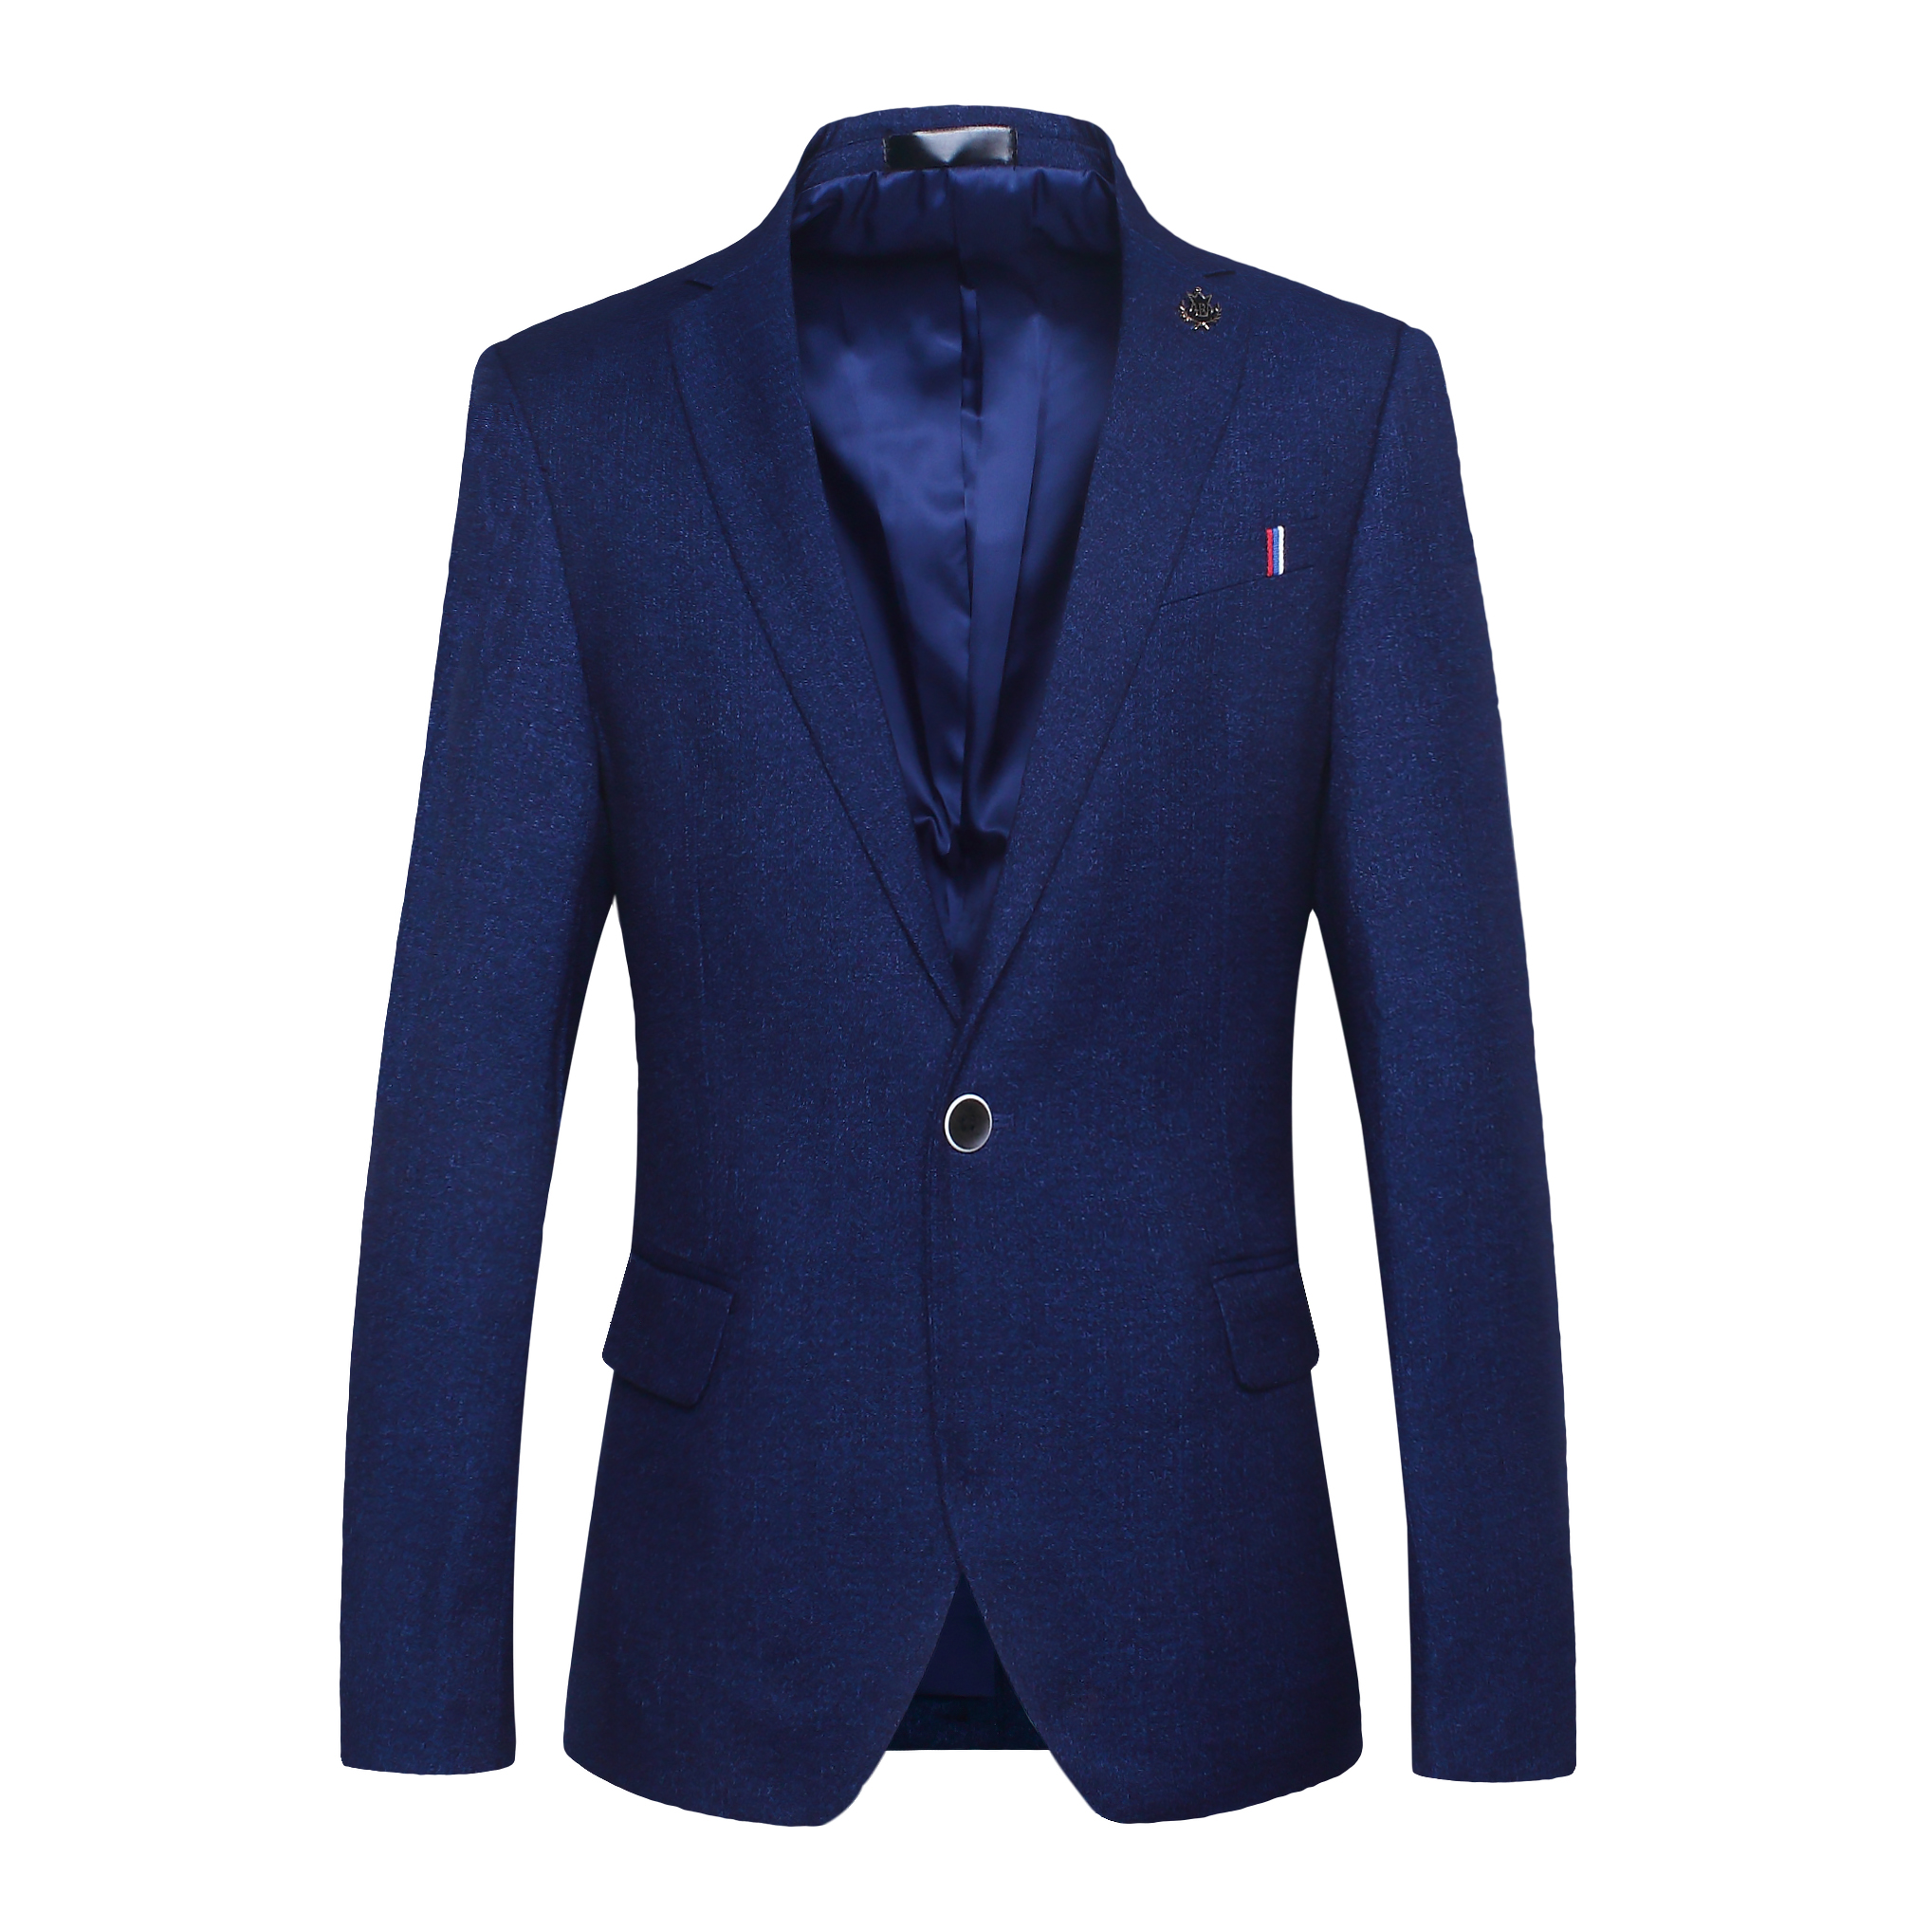 BROWON Casual Blazer Men Slim Fit Solid Color Badge Design Cool Party Gentleman Suit Blazer for Men Regular Jacket for Men